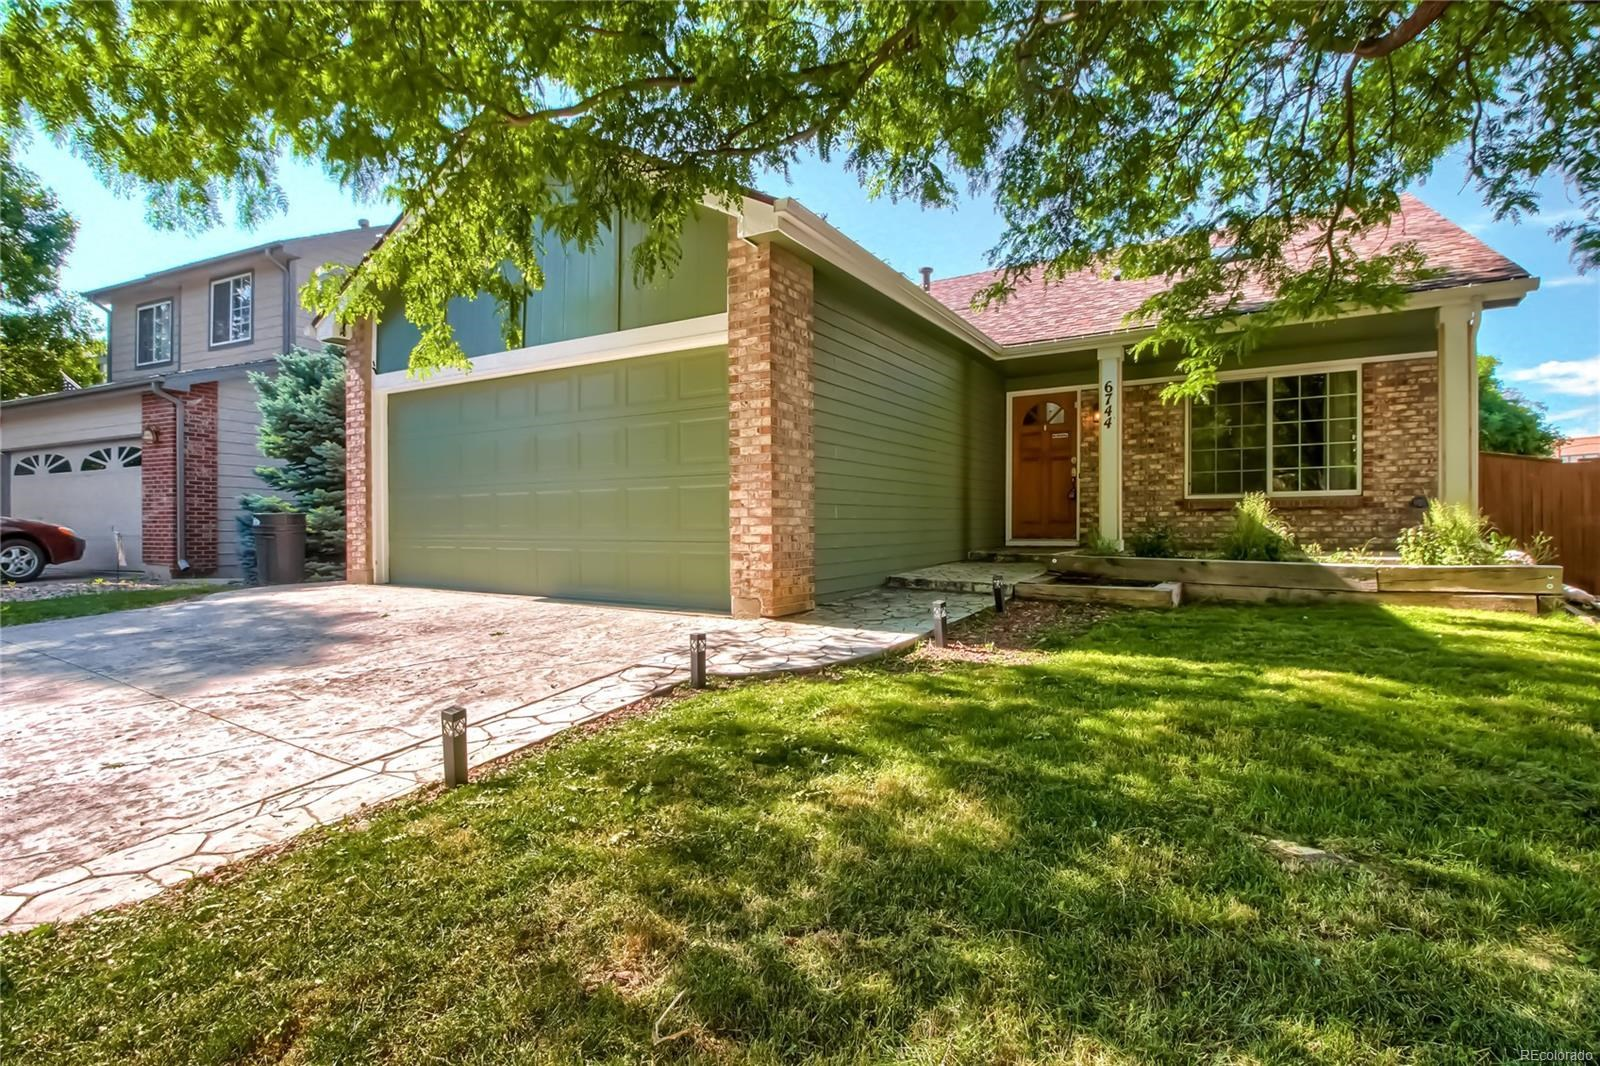 MLS# 2004721 - 2 - 6744 Amherst Court, Highlands Ranch, CO 80130